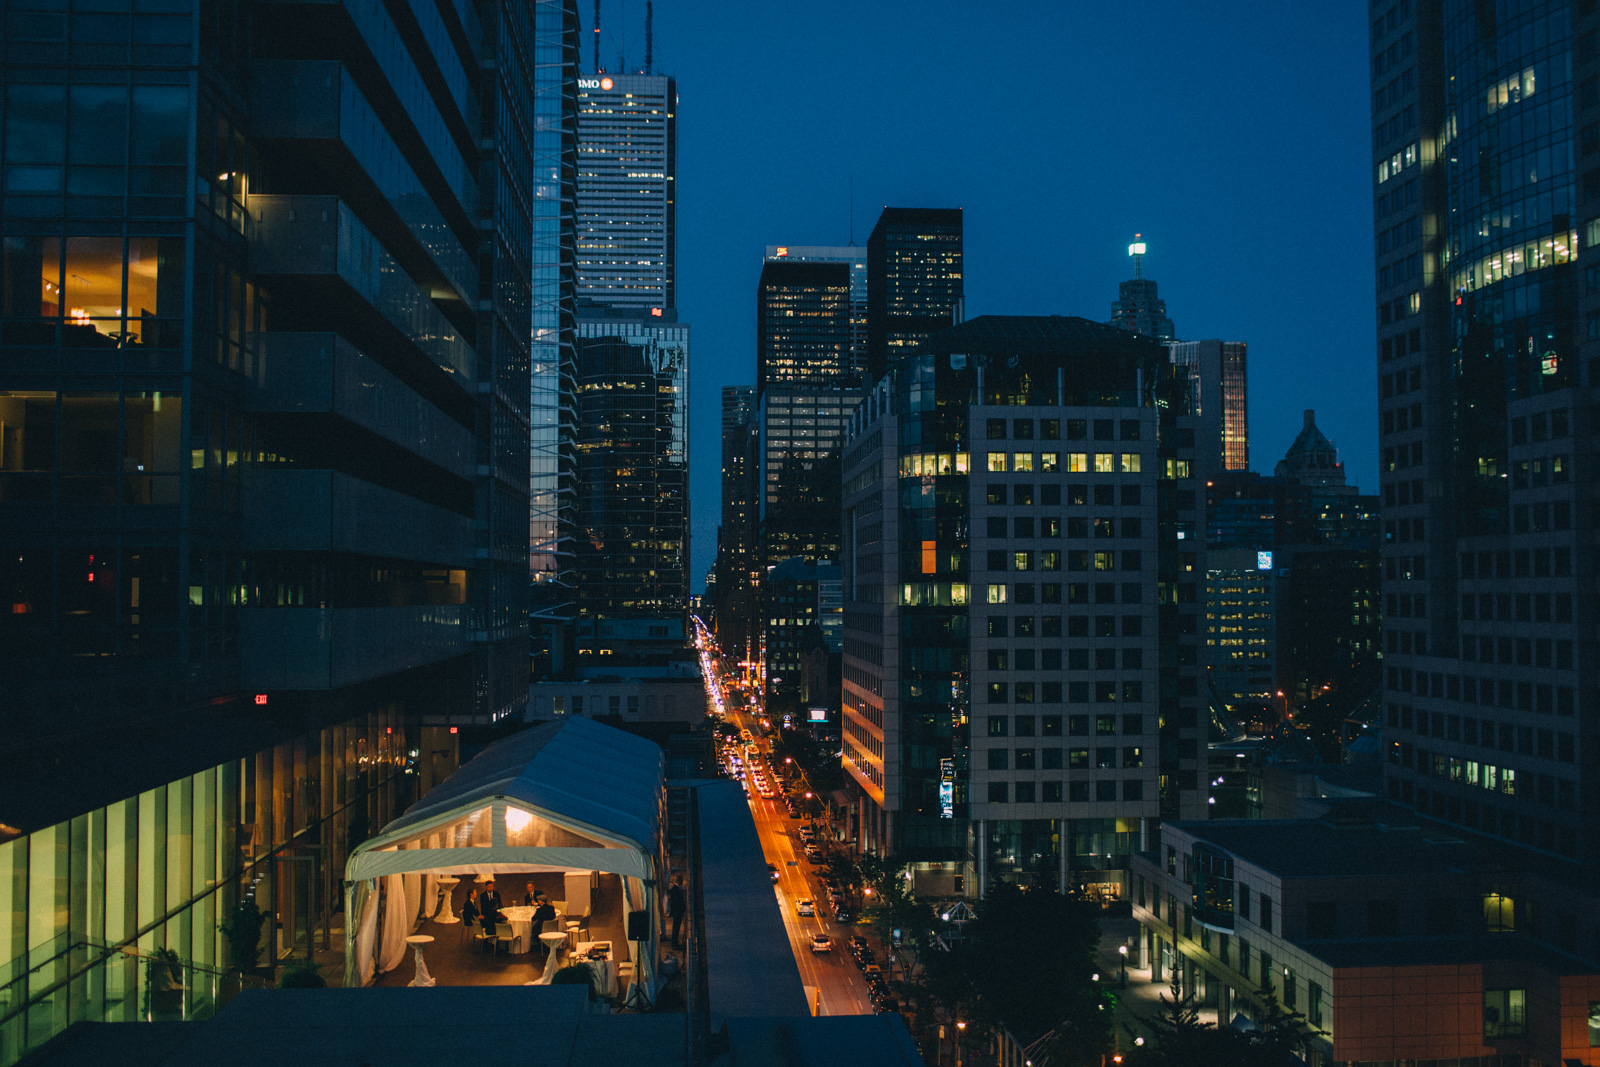 Malaparte-wedding-photography-Toronto-by-Sam-Wong-of-Visual-Cravings_77